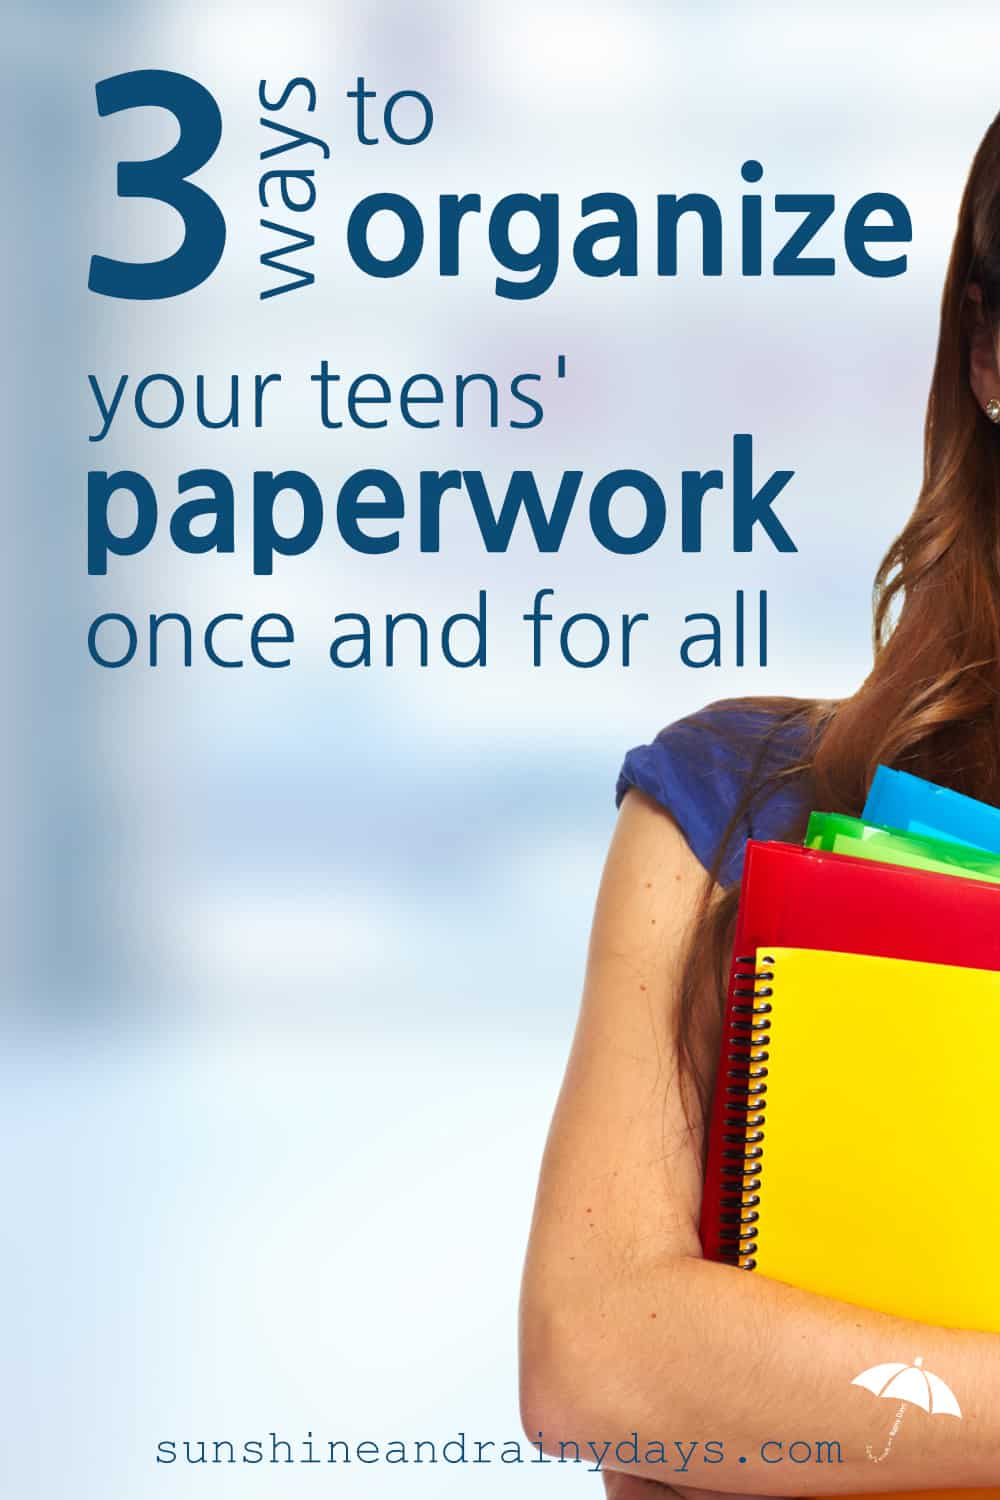 Papers, papers, everywhere! Piled up on the counter, shoved in the drawer, stuffed in backpacks, and even on the floor! How do we organize our teens' paperwork to set them up for future success?